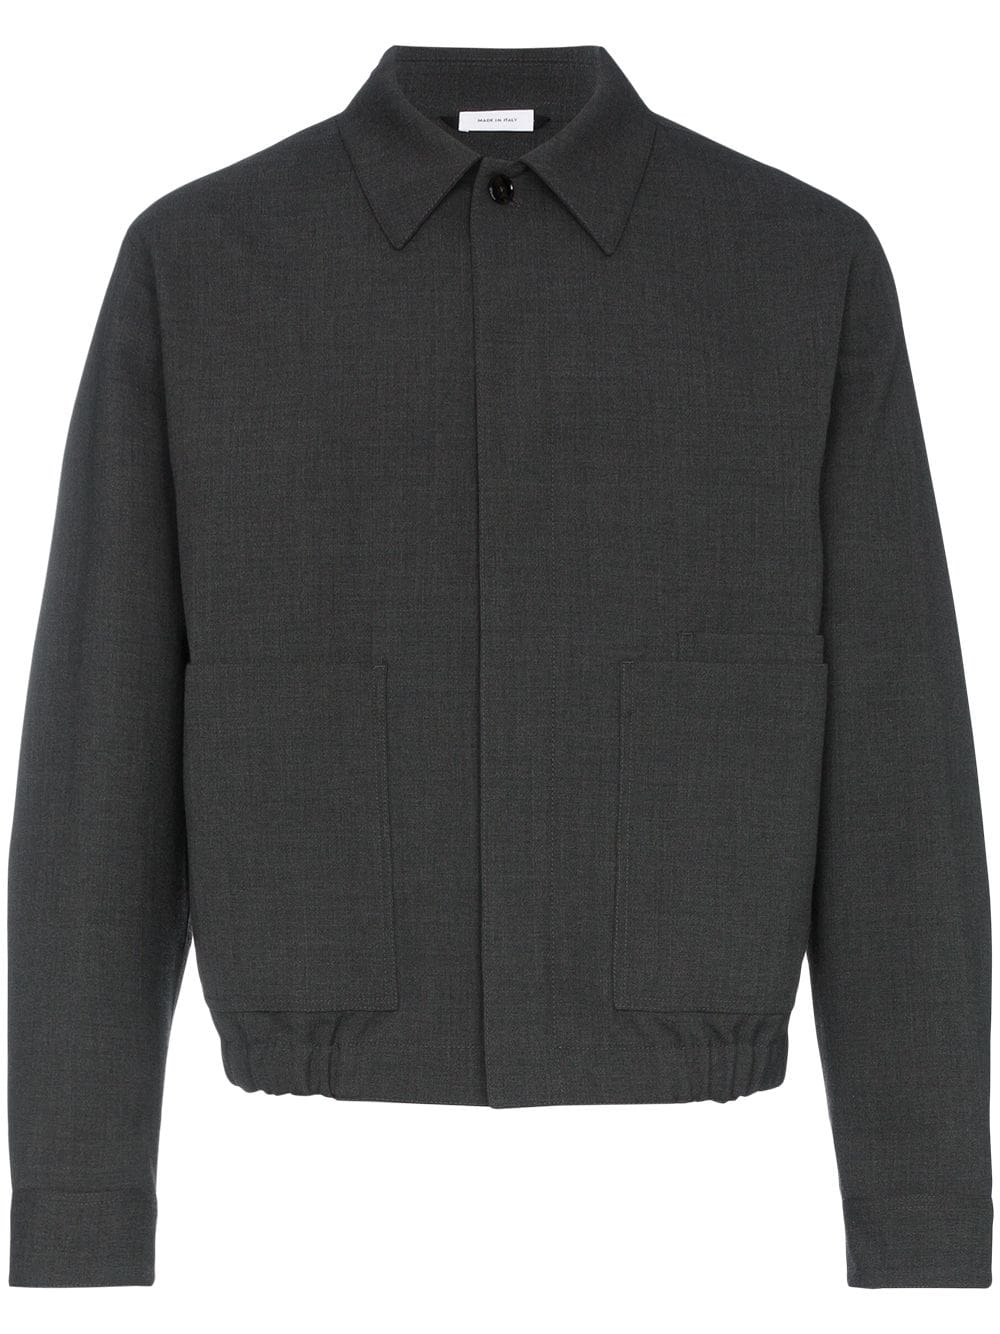 Jil Sander Wool Shirt Jacket